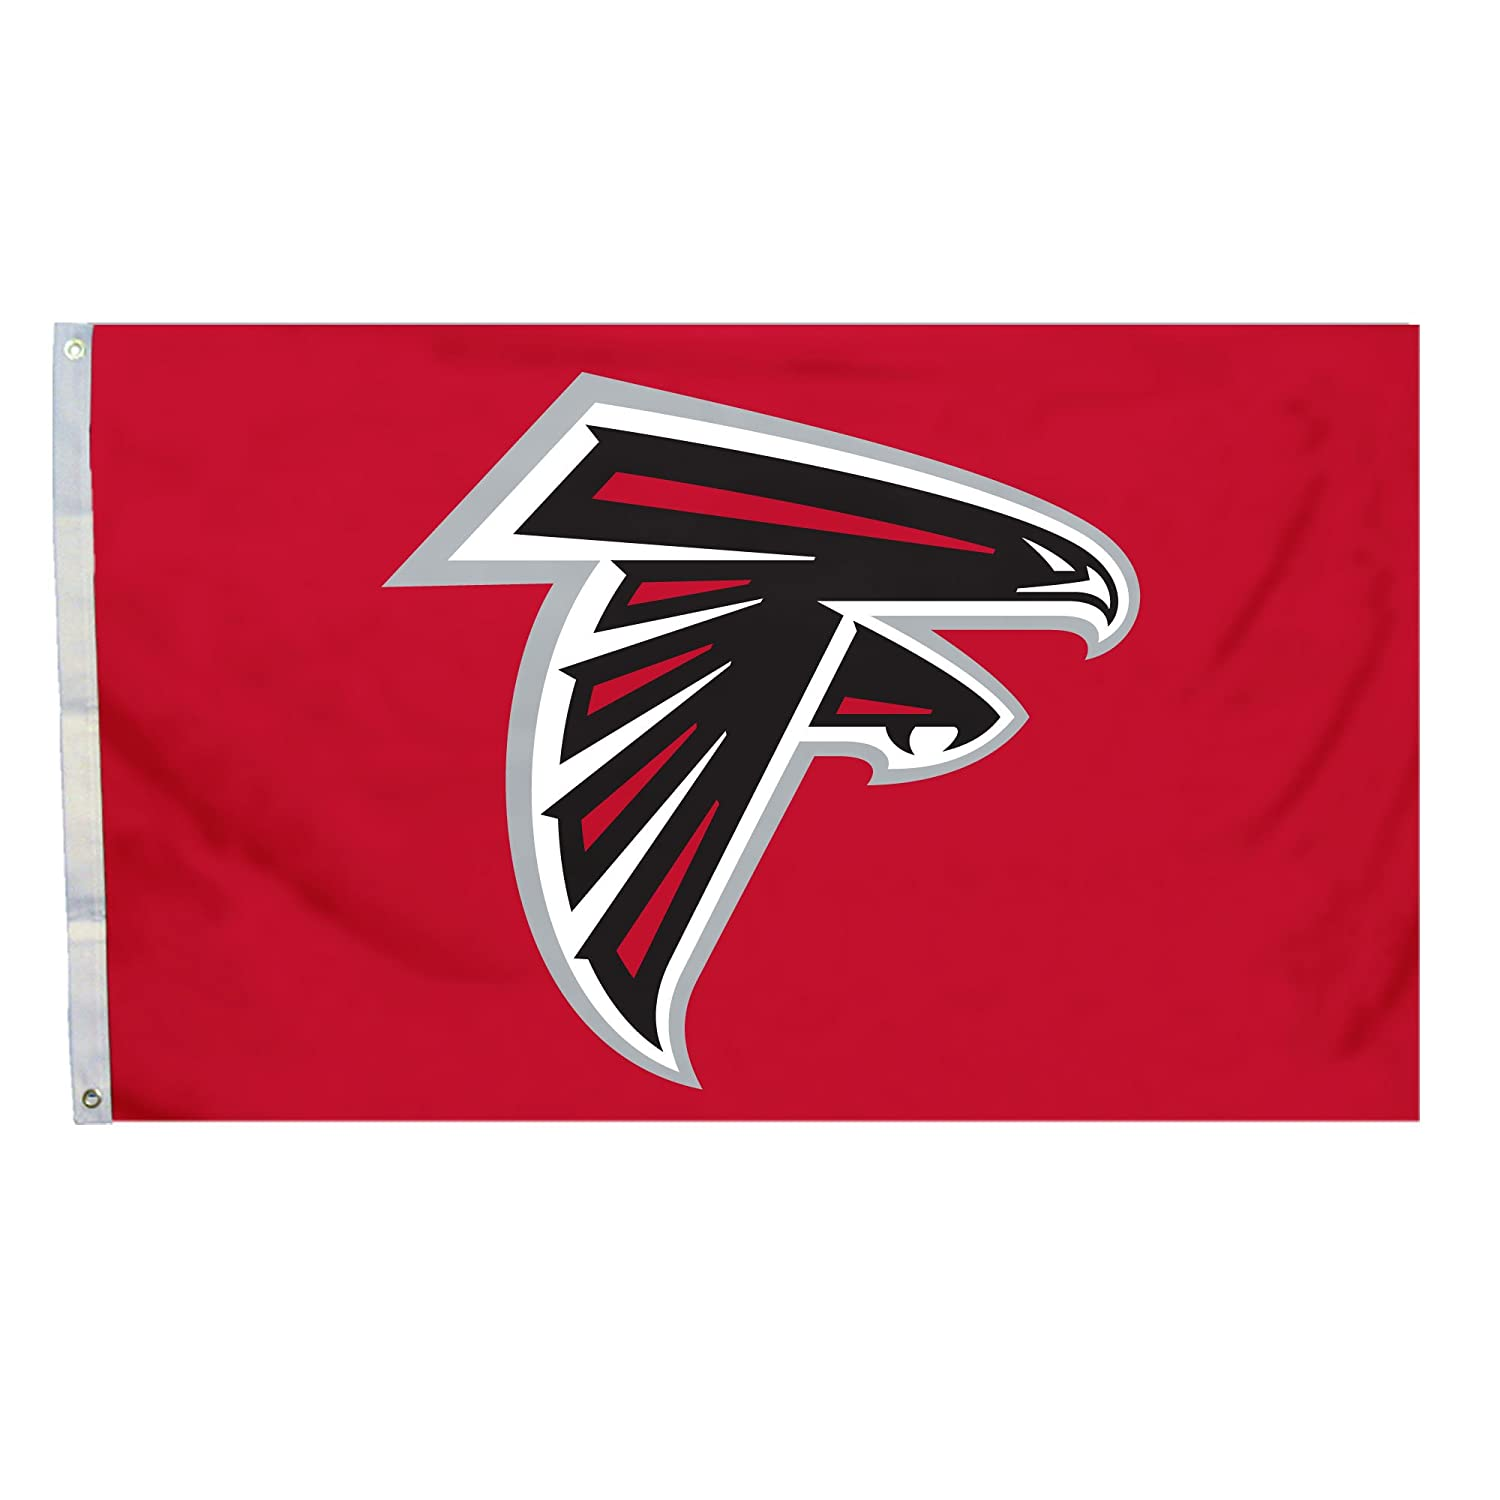 Amazon nfl atlanta falcons flag with grommetts 3 x 5 feet amazon nfl atlanta falcons flag with grommetts 3 x 5 feet sports fan wall banners sports outdoors voltagebd Choice Image